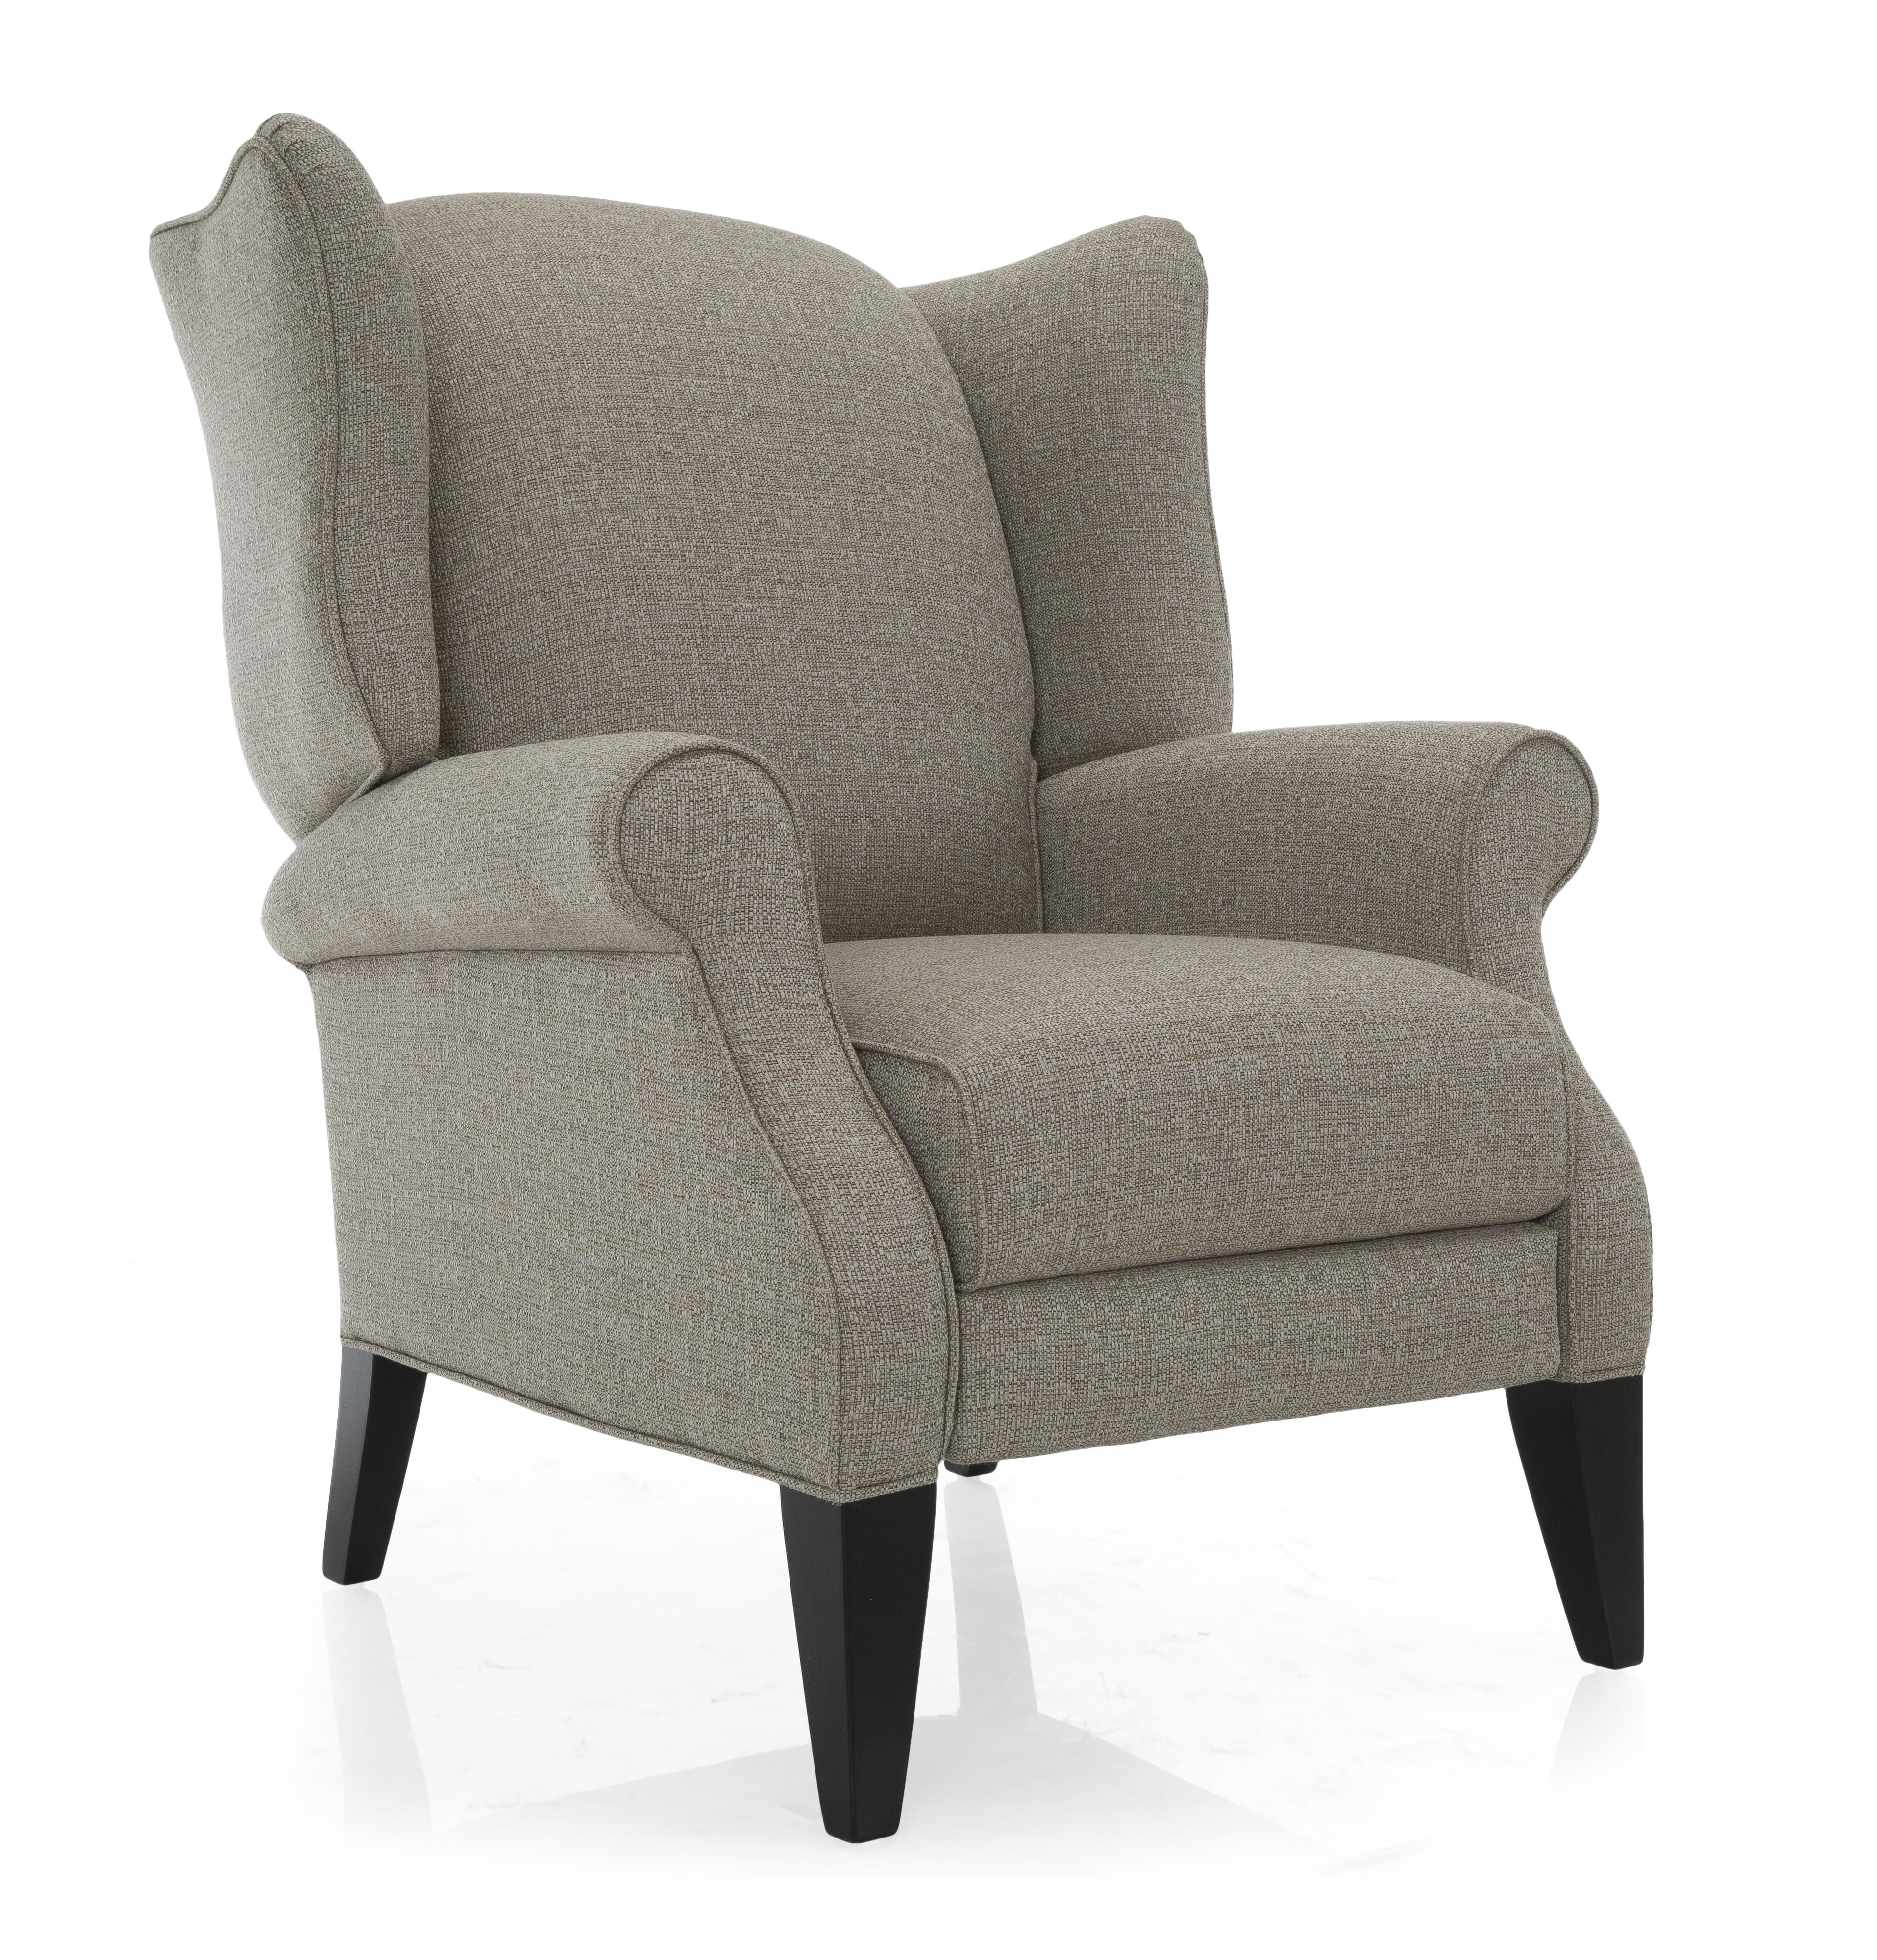 2220 Push Back Wing Chair by Decor-Rest at Rooms for Less